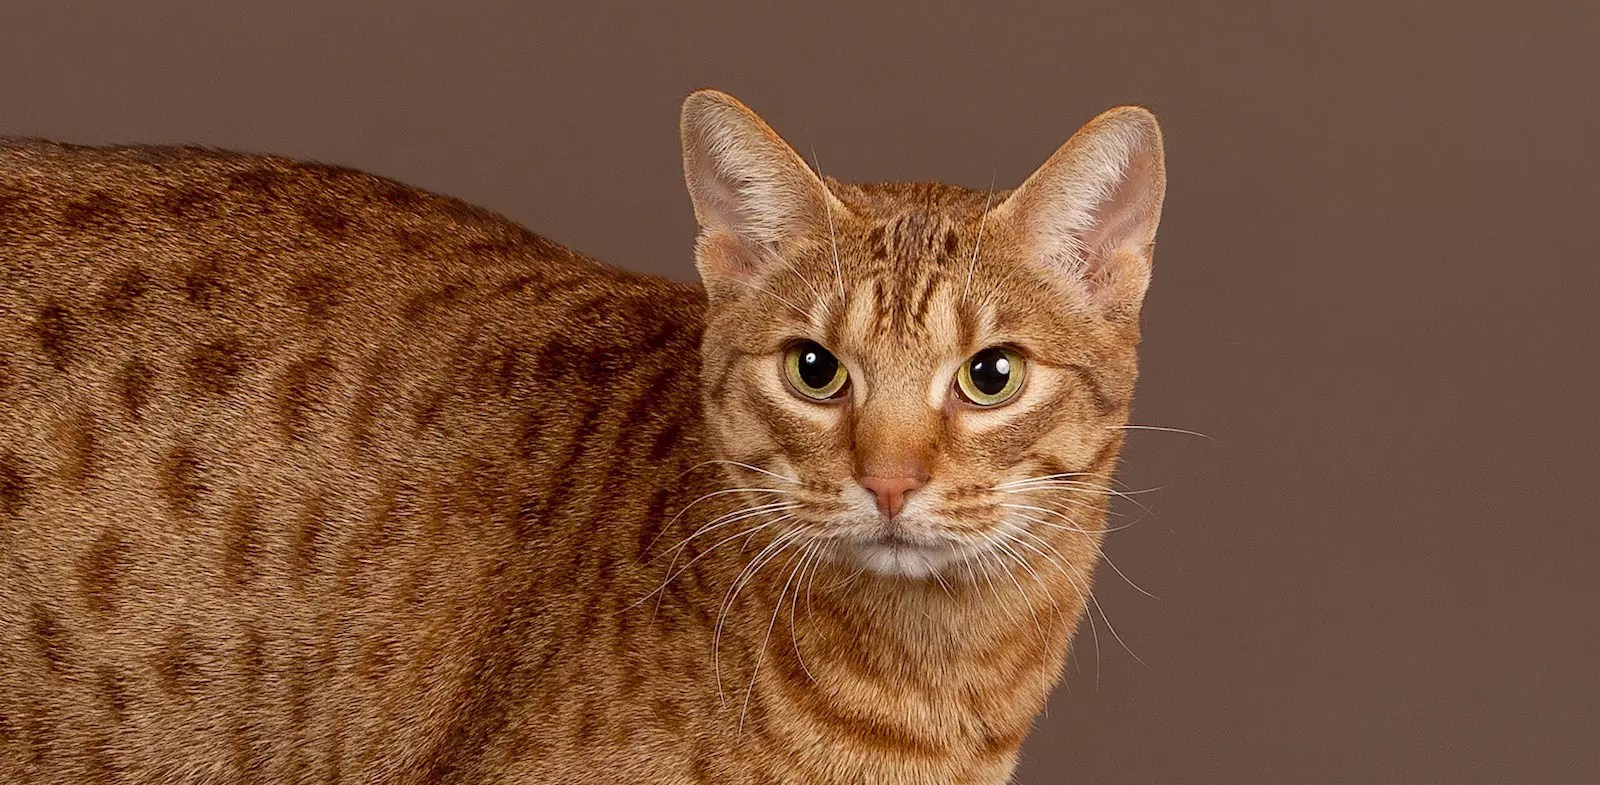 5 Things To Know About Ocicats